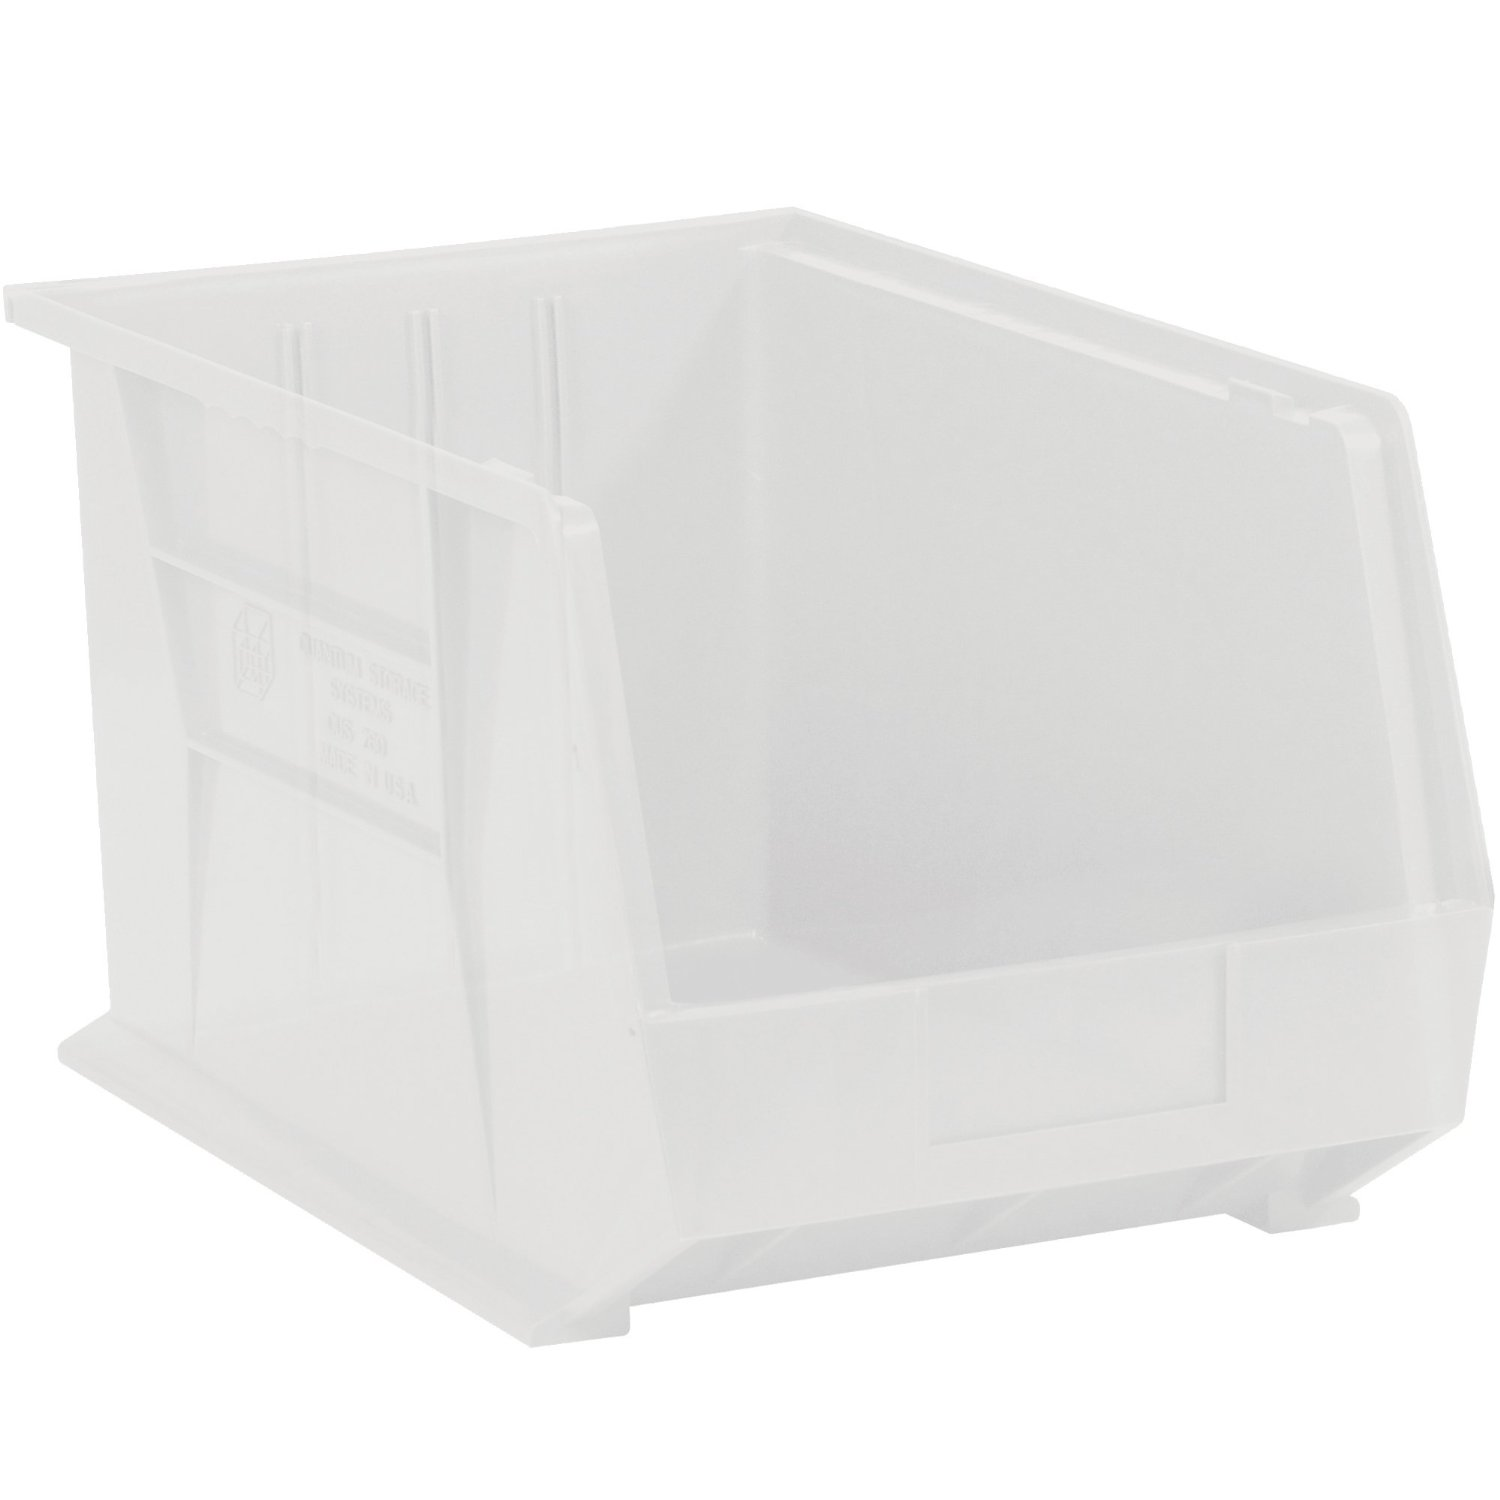 "Aviditi BINP1811CL Plastic Stack and Hang Bin Boxes, 18"" x 11"" x 10"", Clear (Pack of 4)"